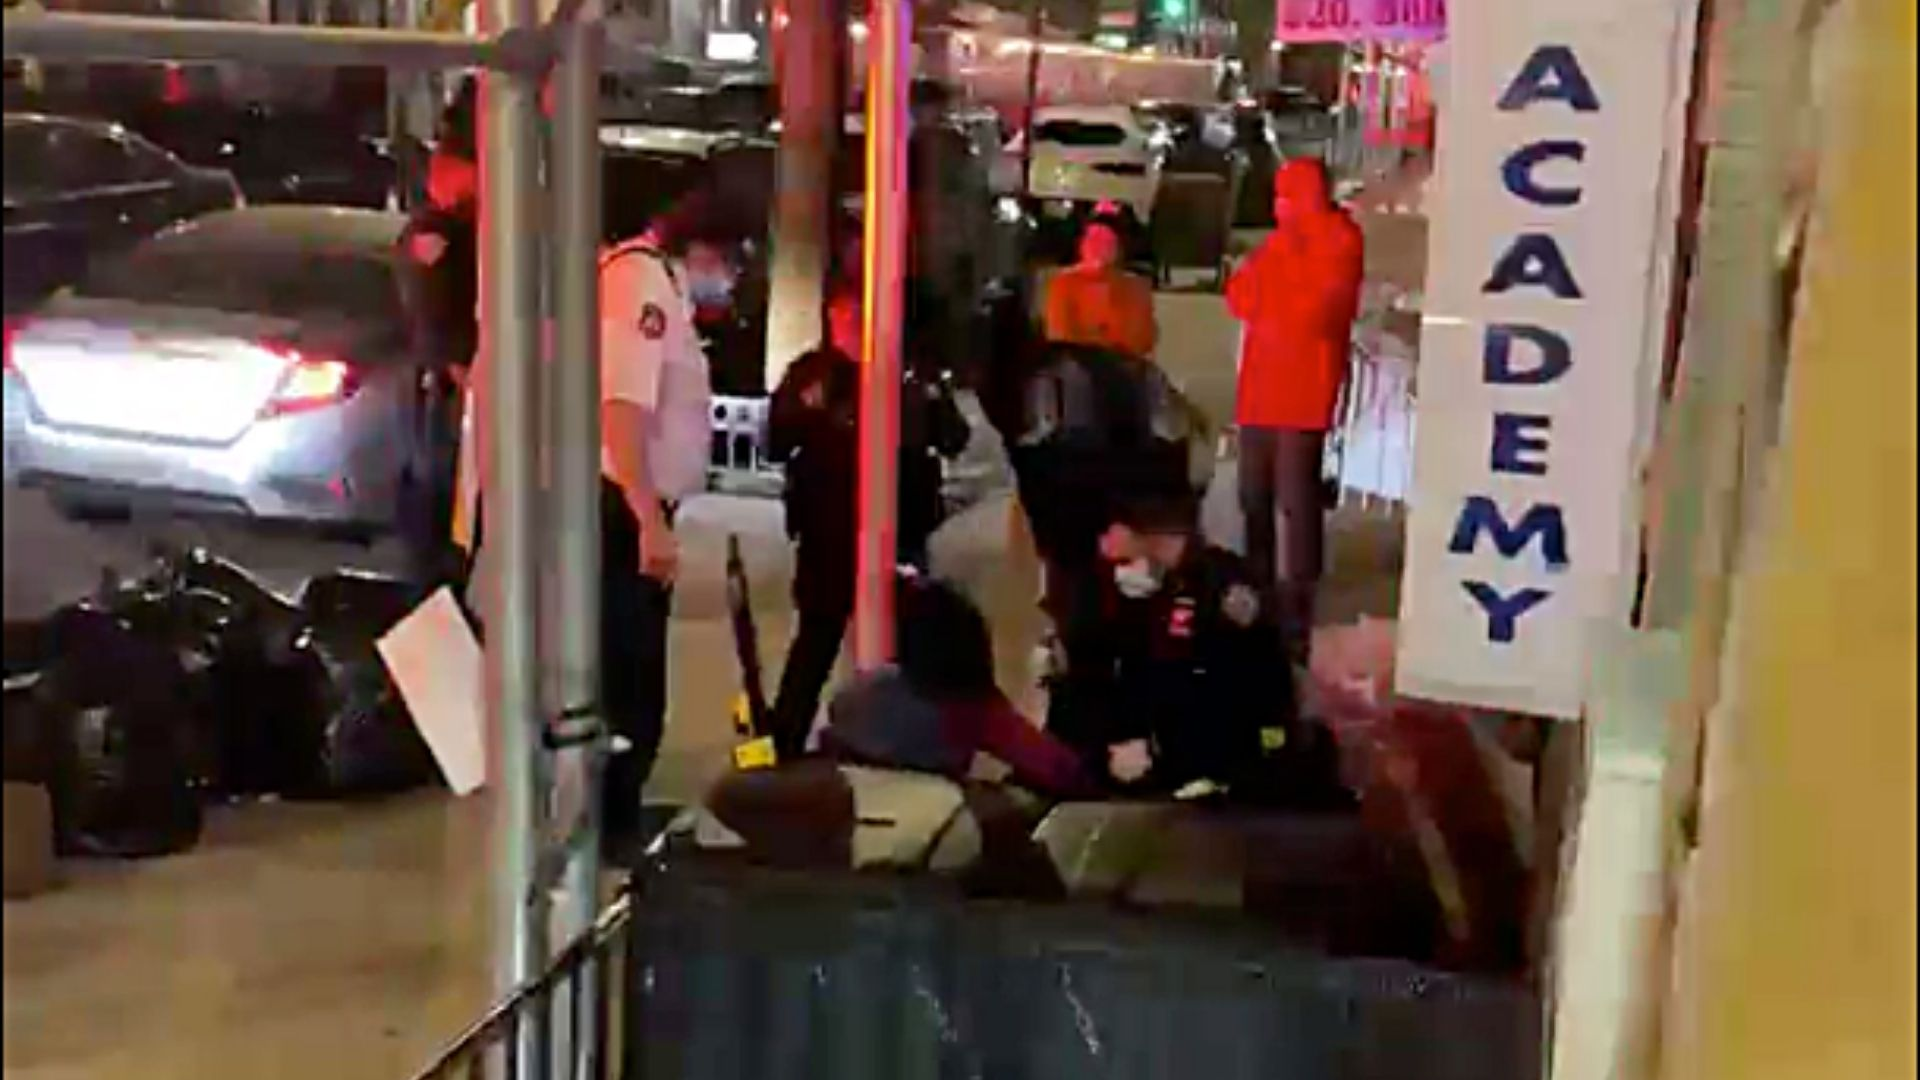 Police on the scene after a woman, 28, was attacked with a hatchet by another woman, 22, who was taken into police custody late Monday night, April 19, 2021 on Manhattan's Upper East Side, according to police.